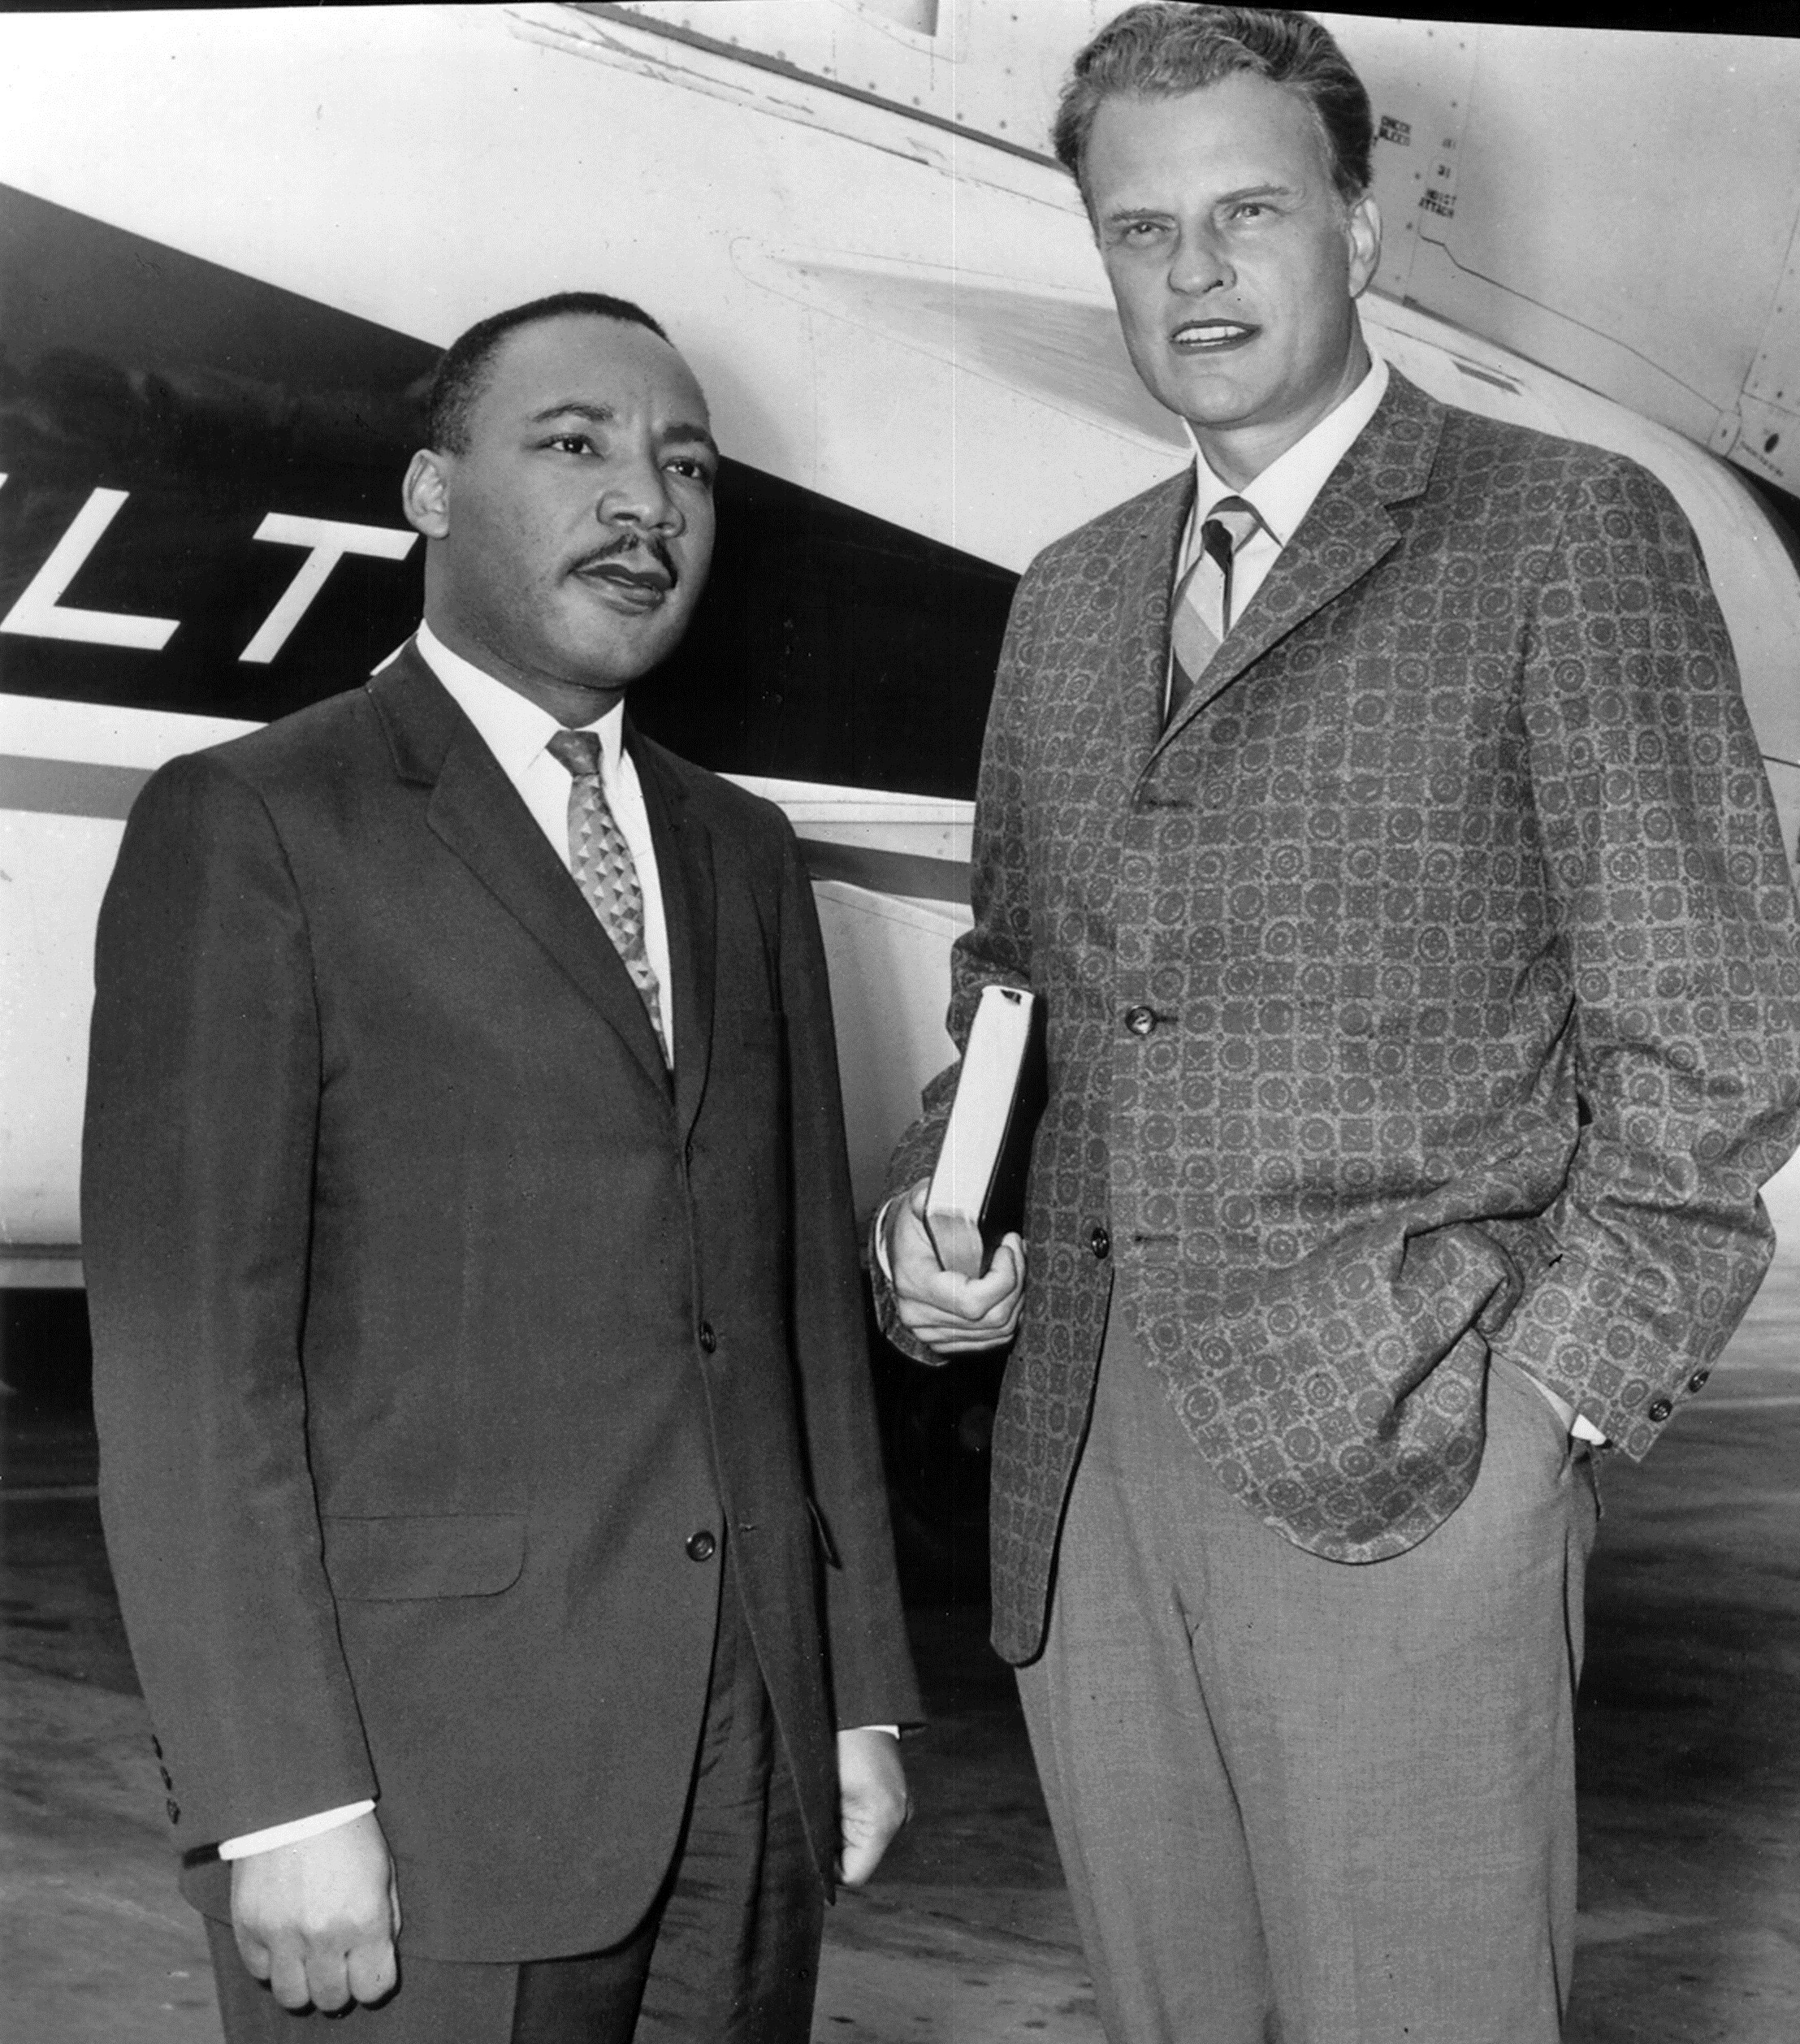 Remembering Dr. Martin Luther King, Jr. - The Billy Graham Library Blog